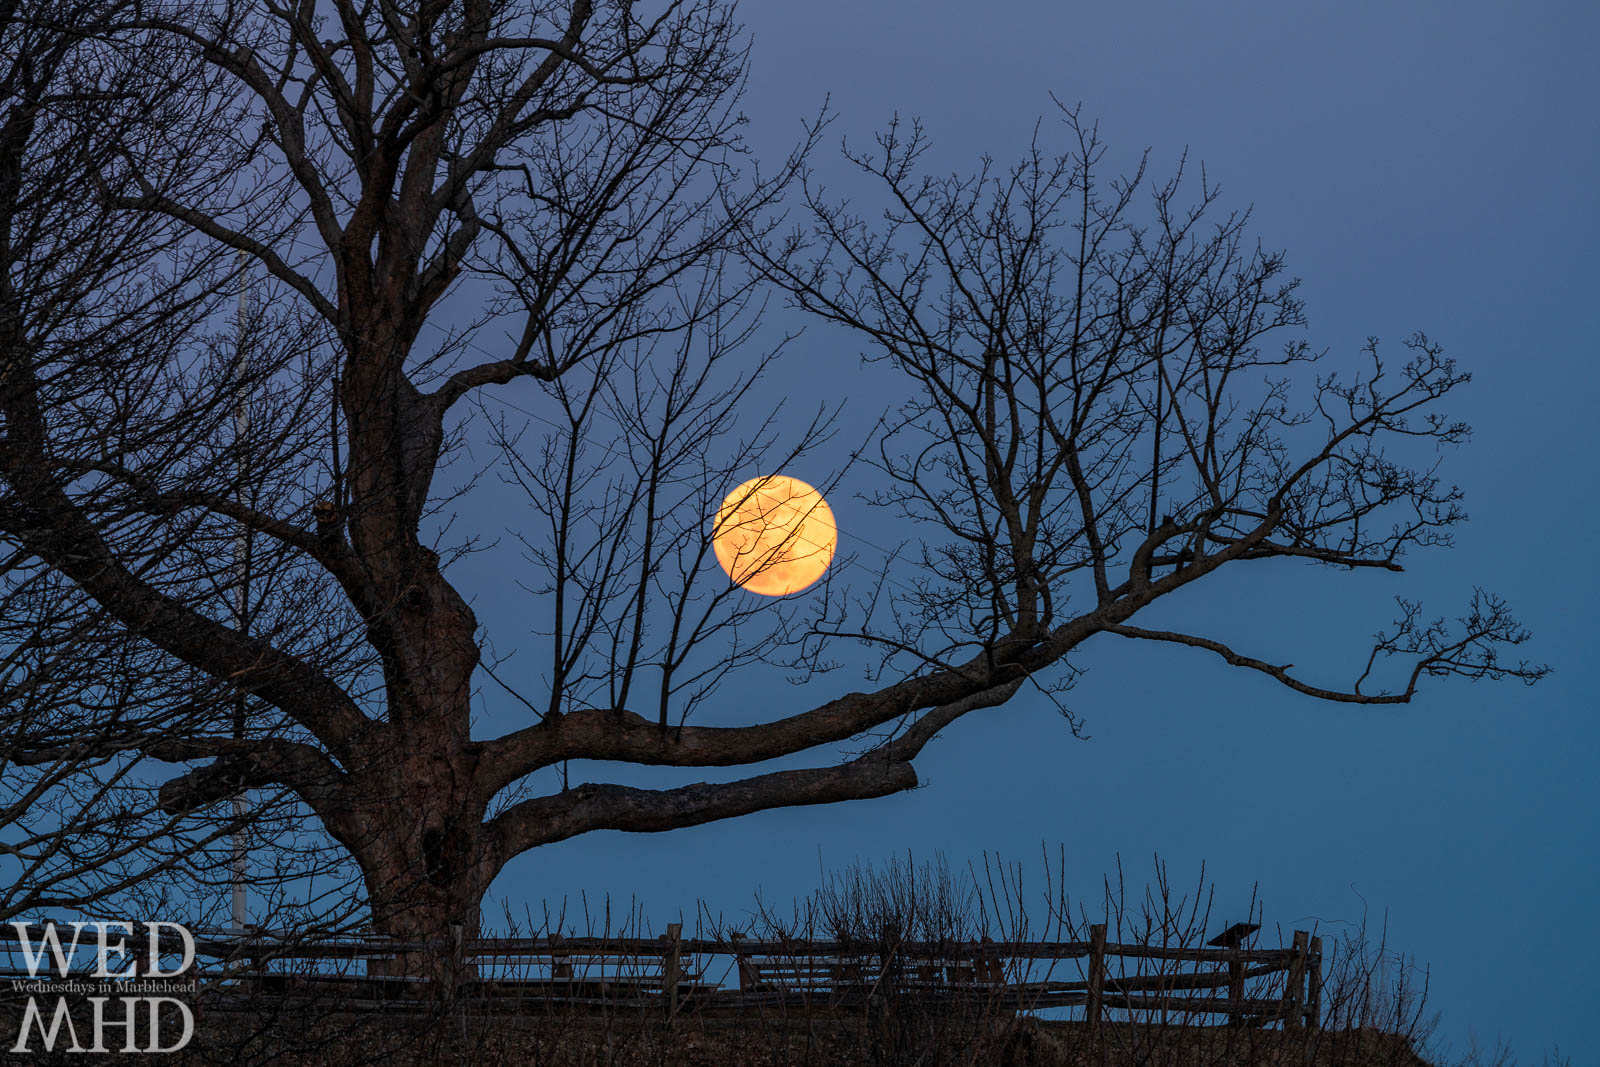 The full moon rises over Fort Sewall and behind the great tree at its entrance